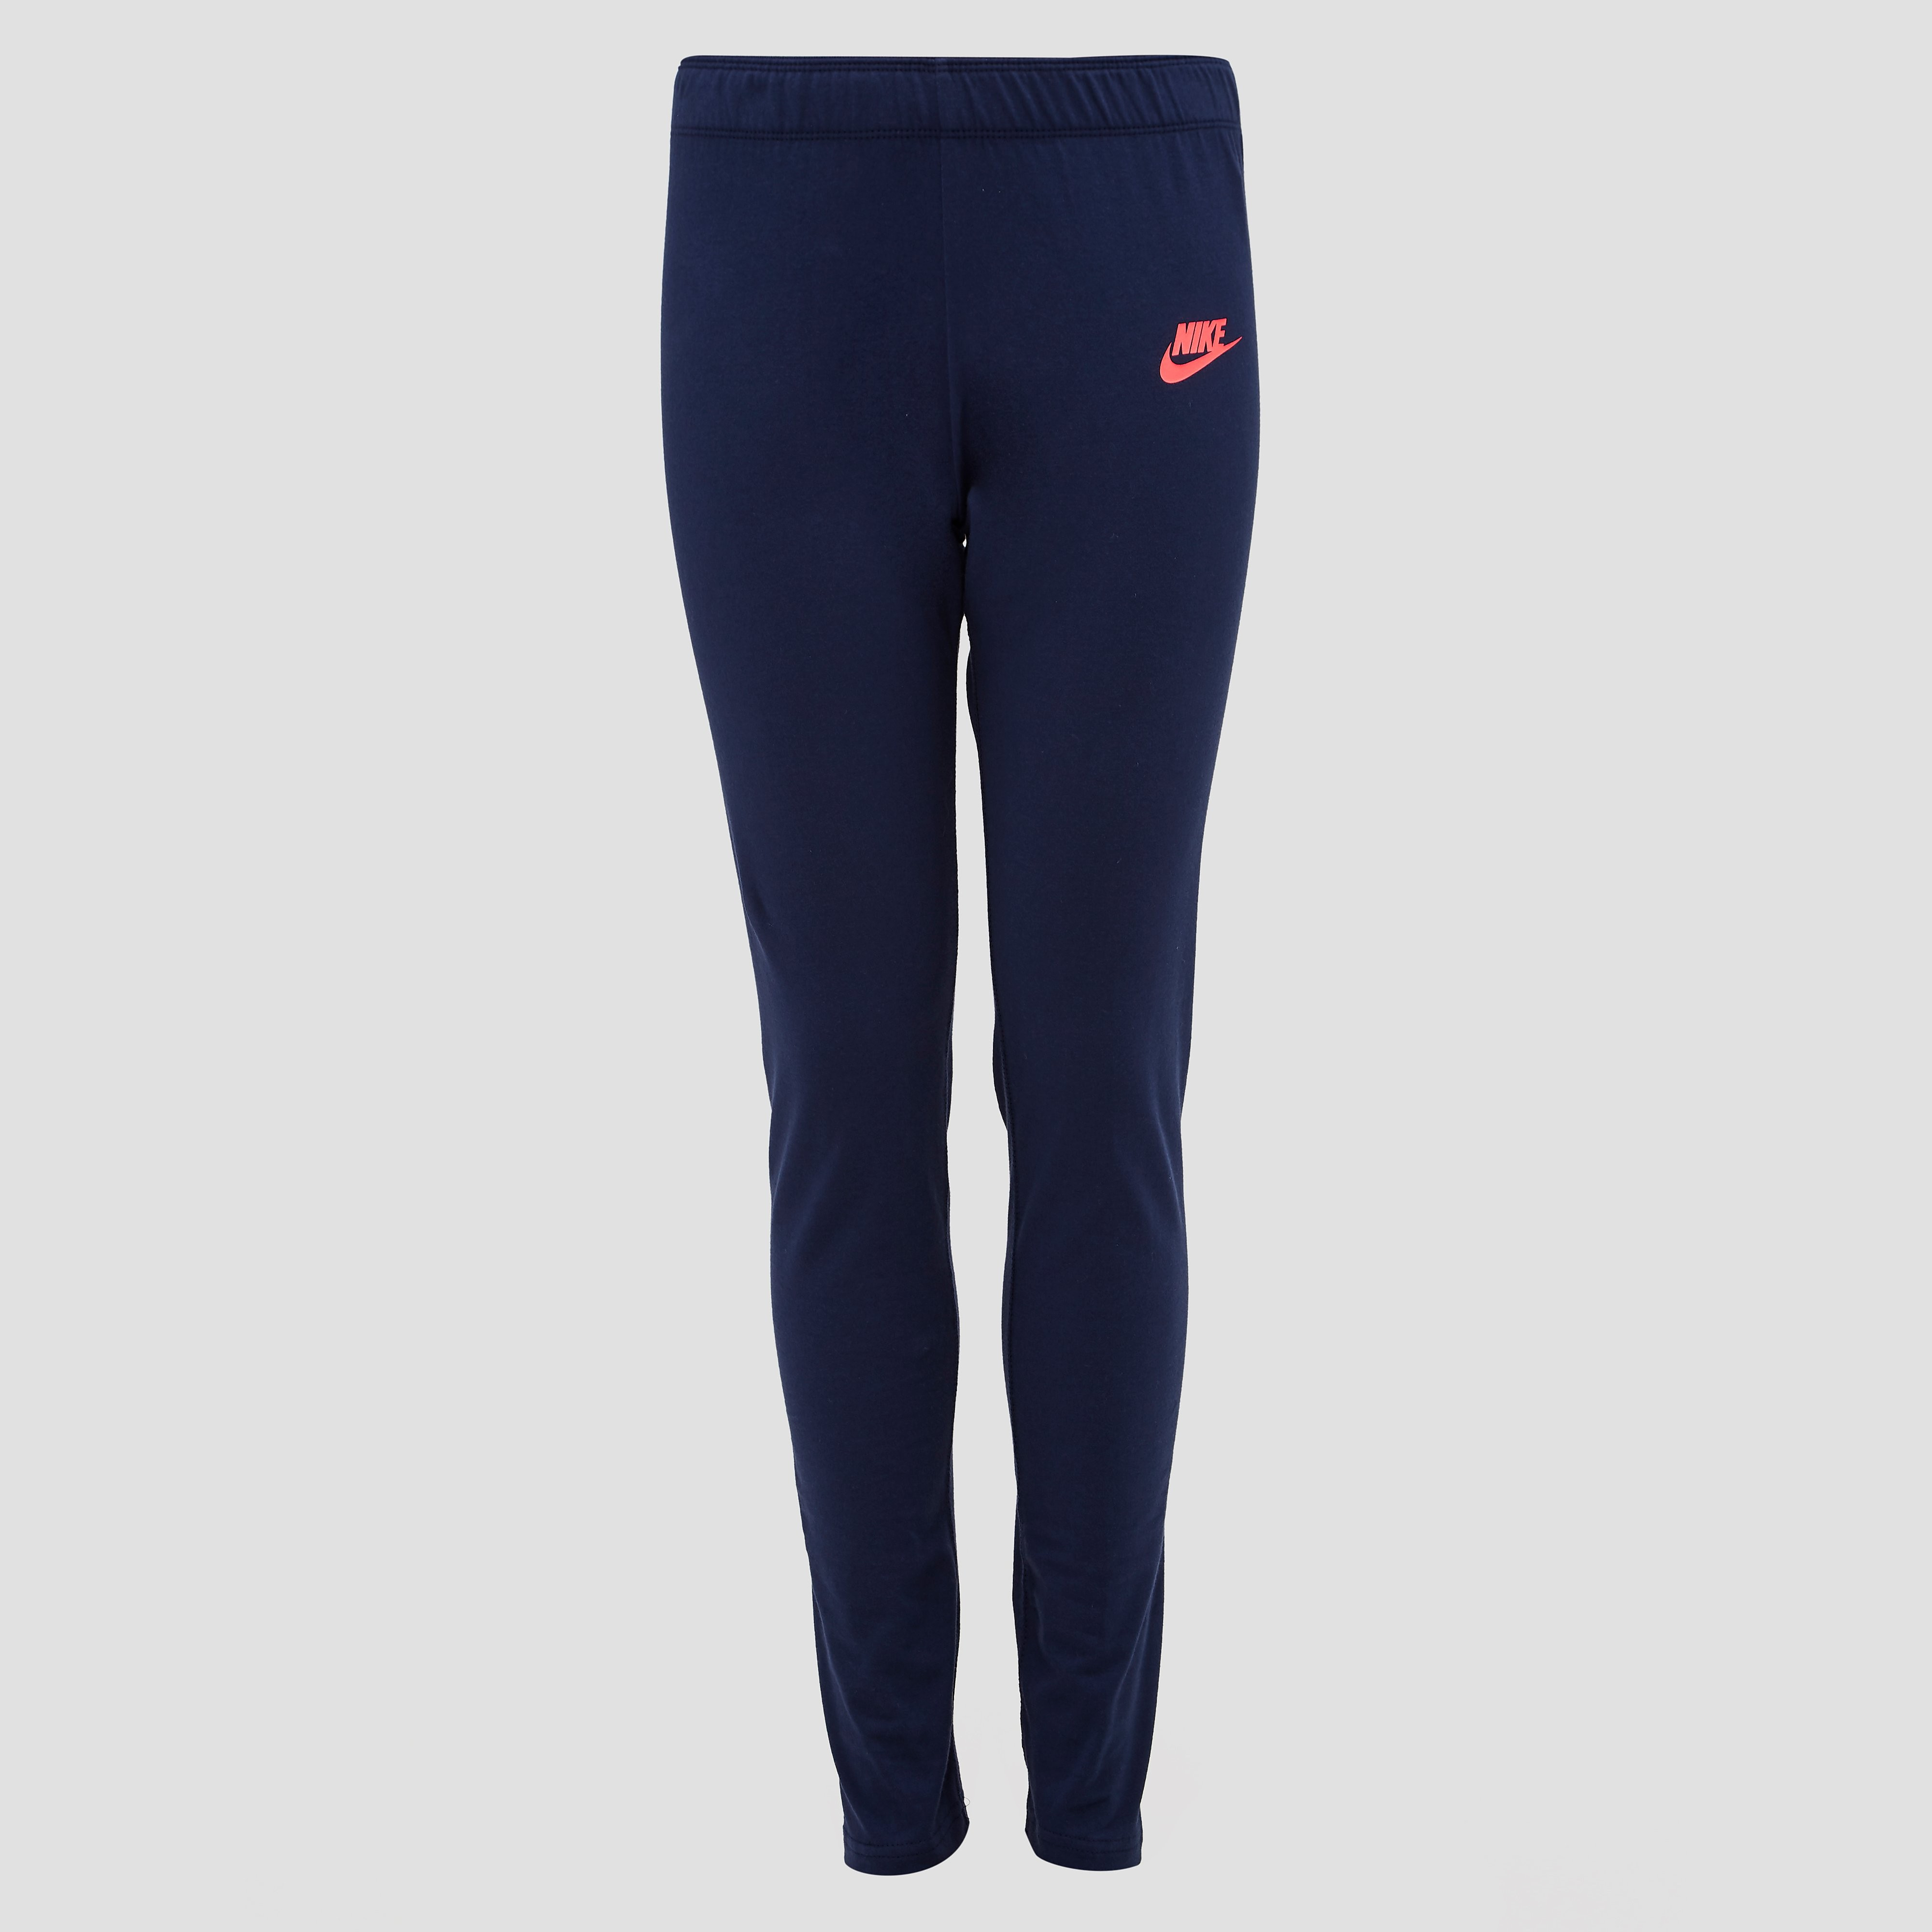 NIKE TIGHT CLUB LEGGING